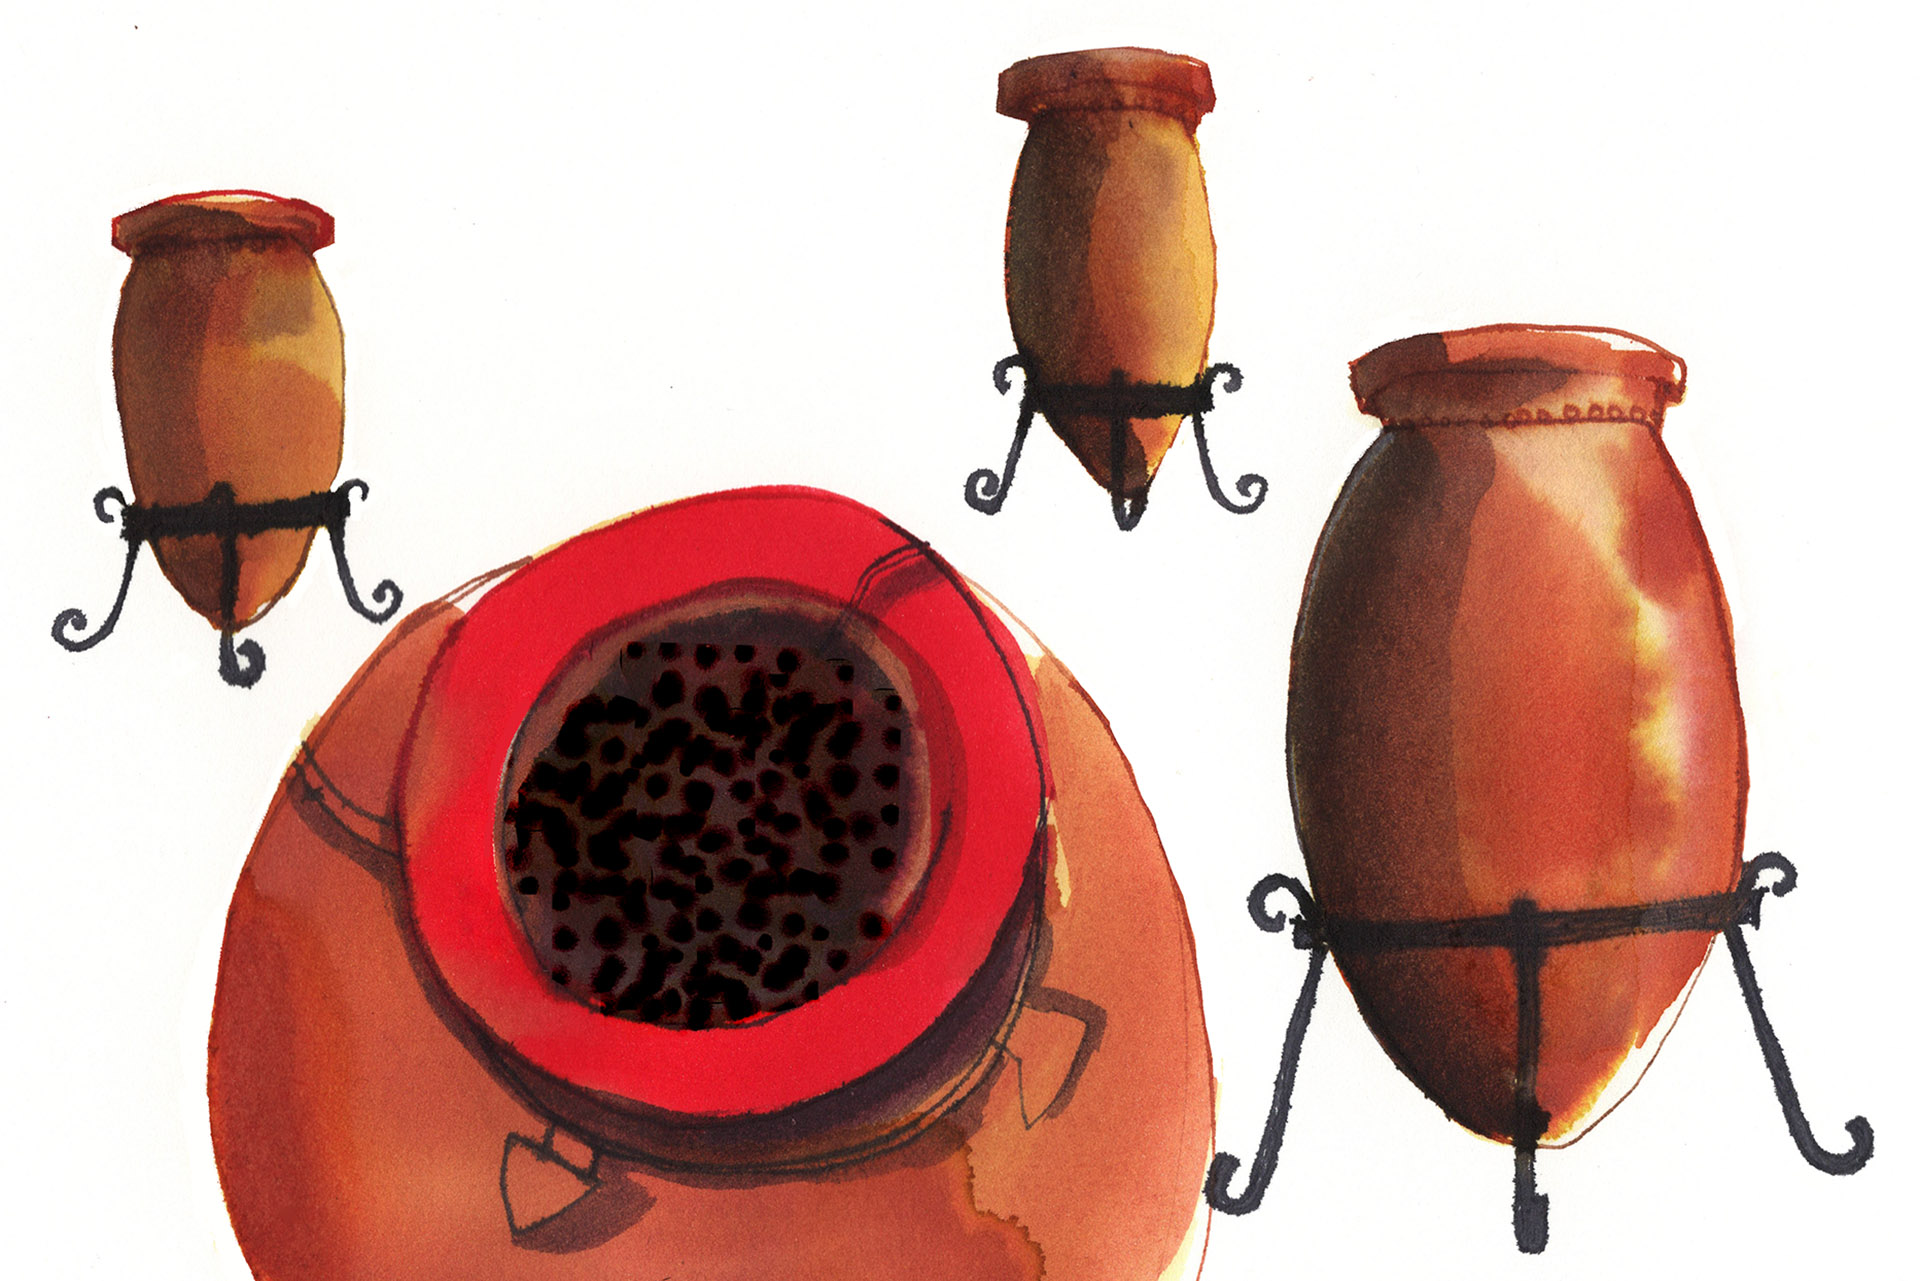 Open-air amphora oxidized wine illustration